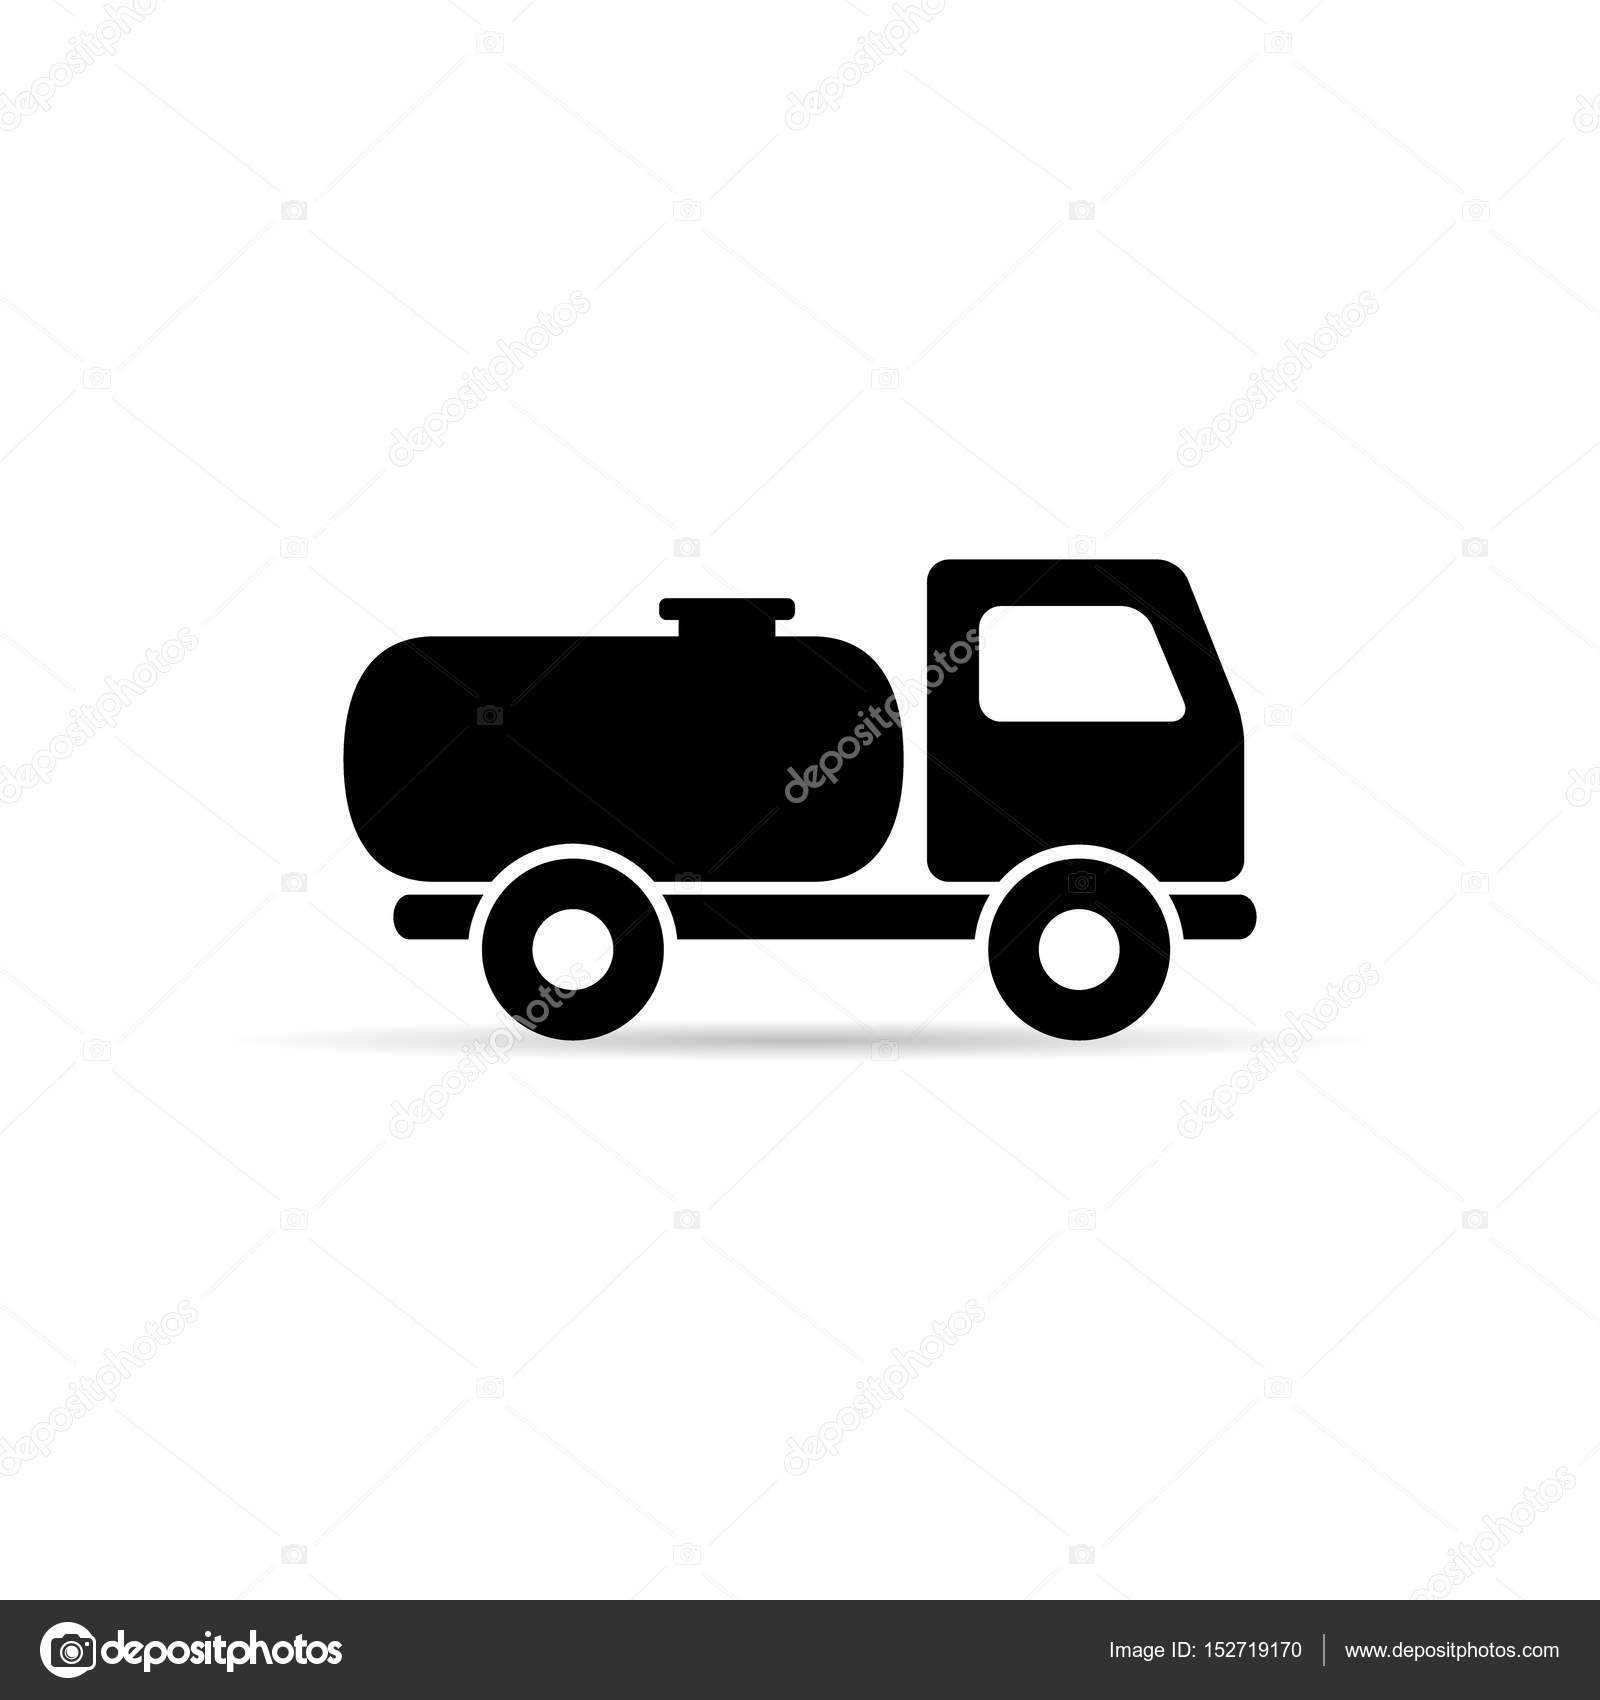 fuel tanker truck icon. simple silhouette, vector. — stock vector